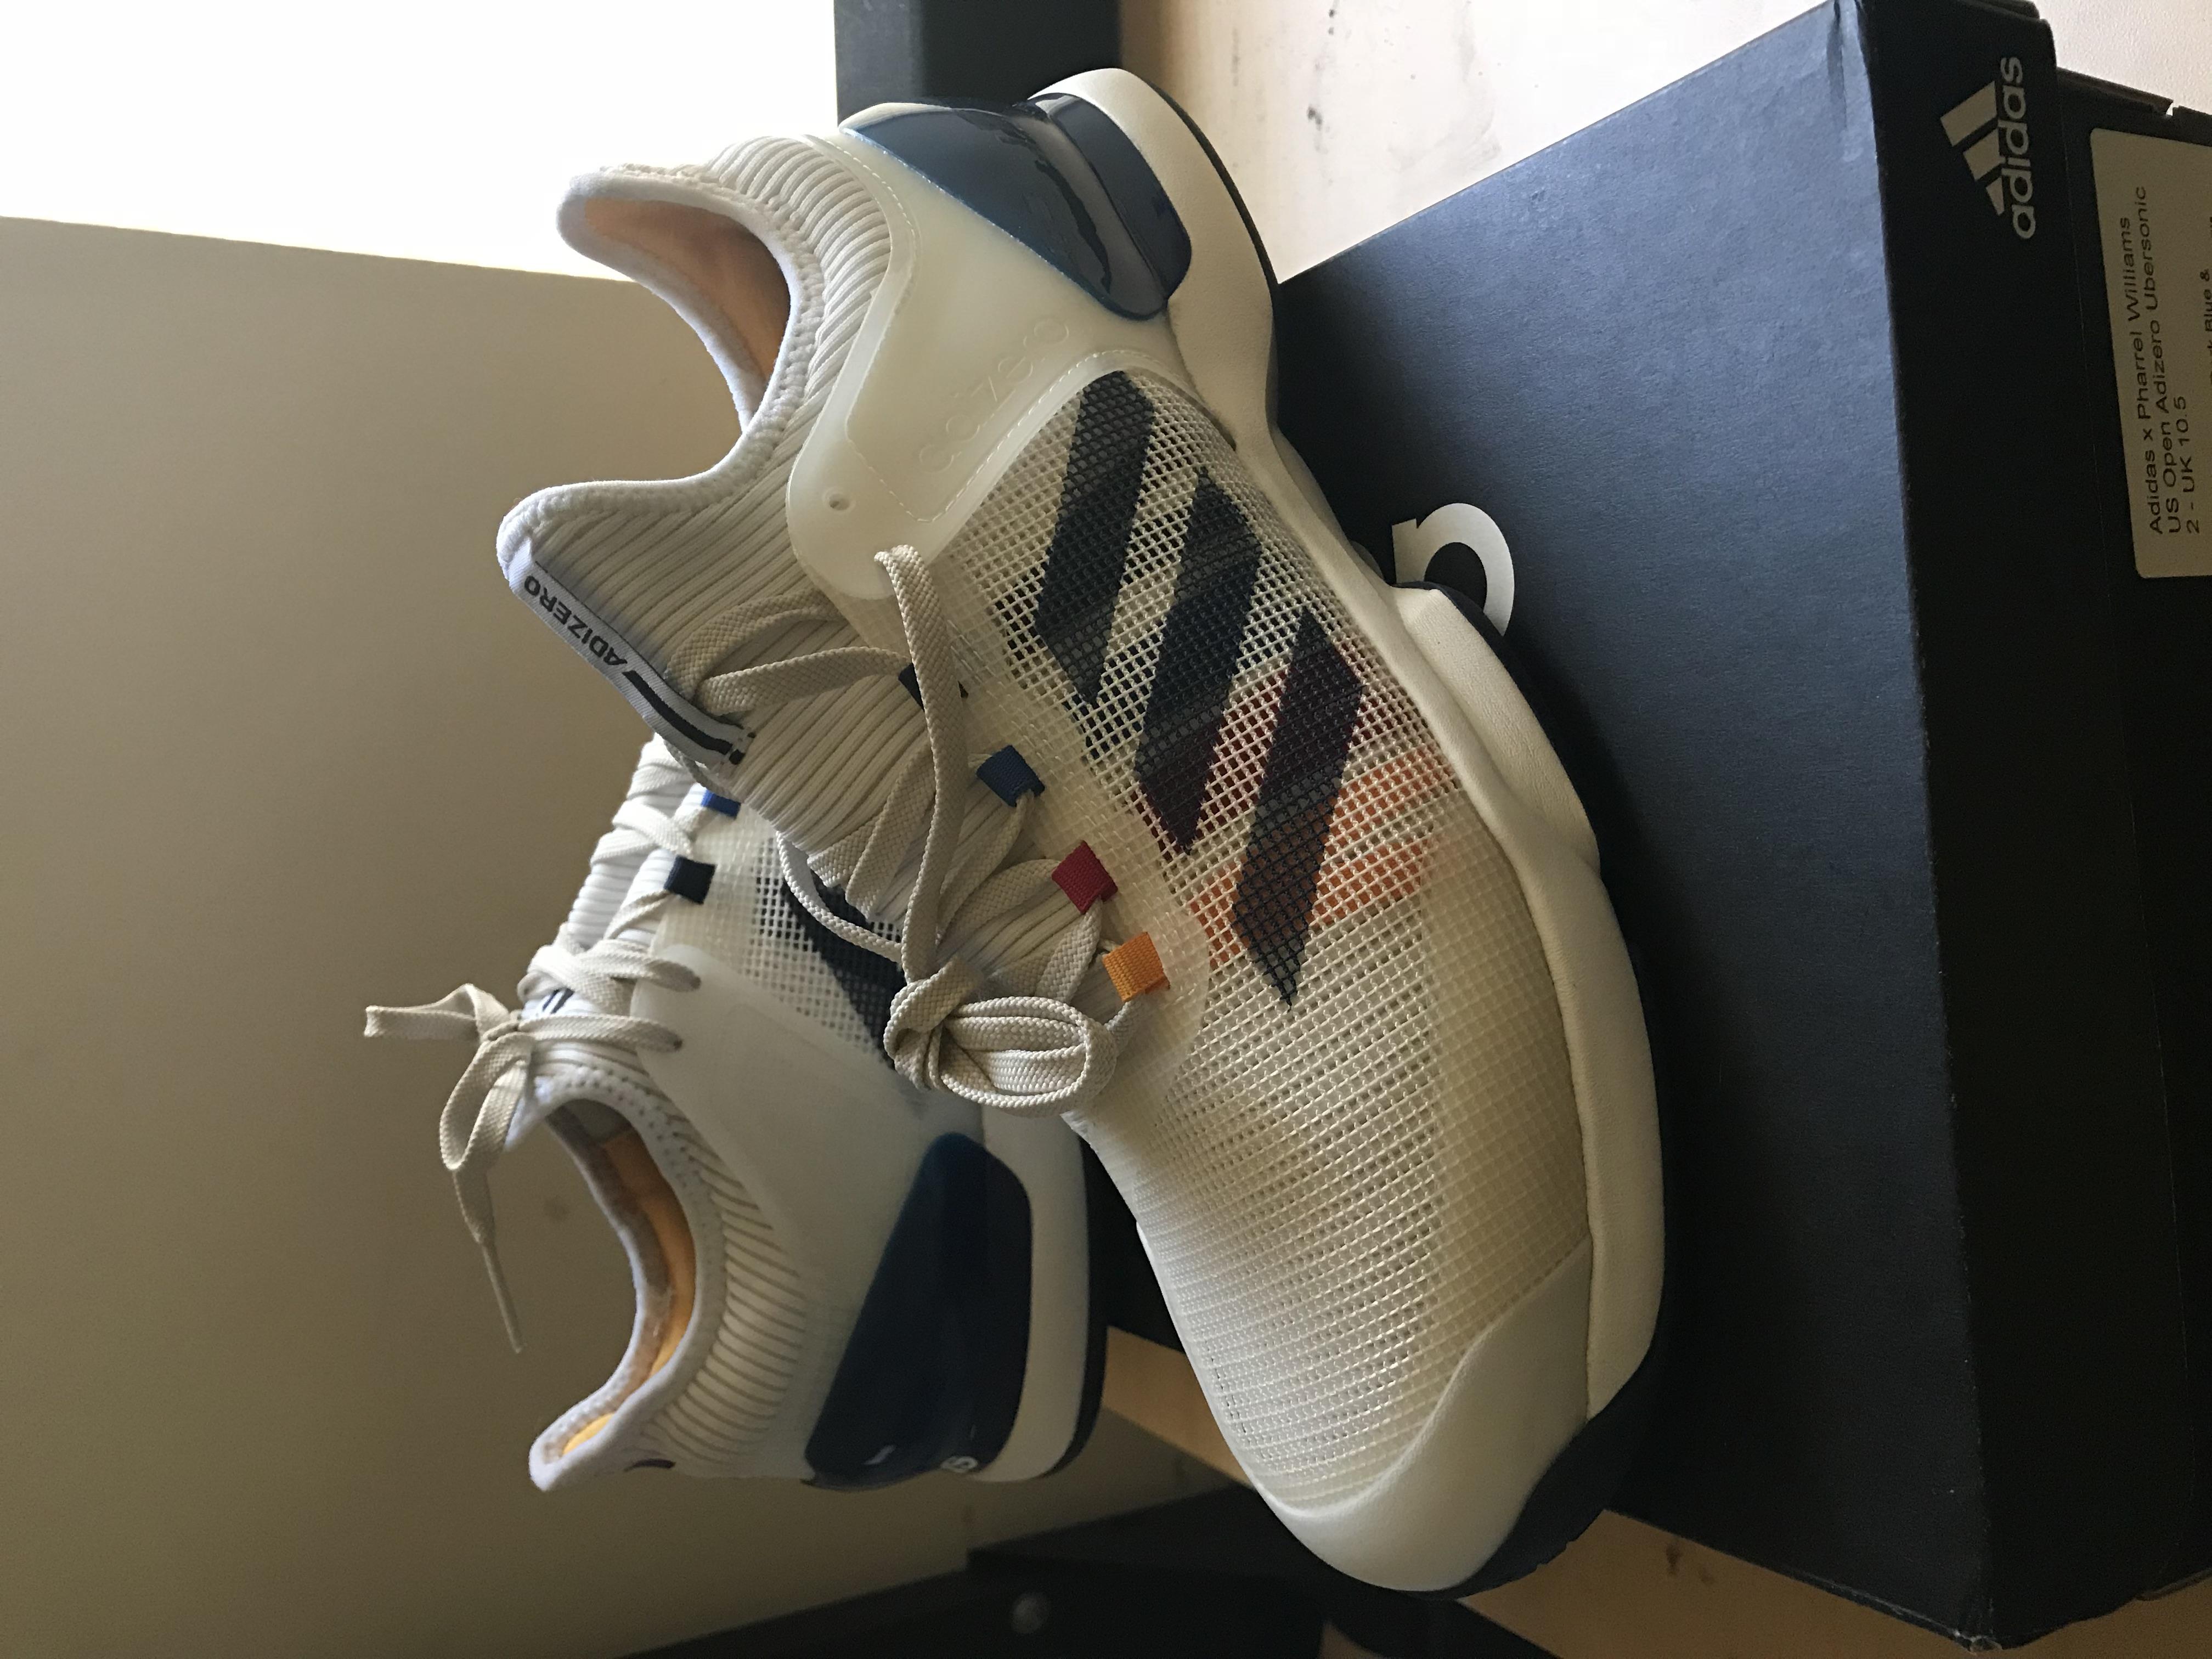 3a38cb52d7133 Adidas US Open Adizero Ubersonic 2 PW Size 11 - Low-Top Sneakers for Sale -  Grailed